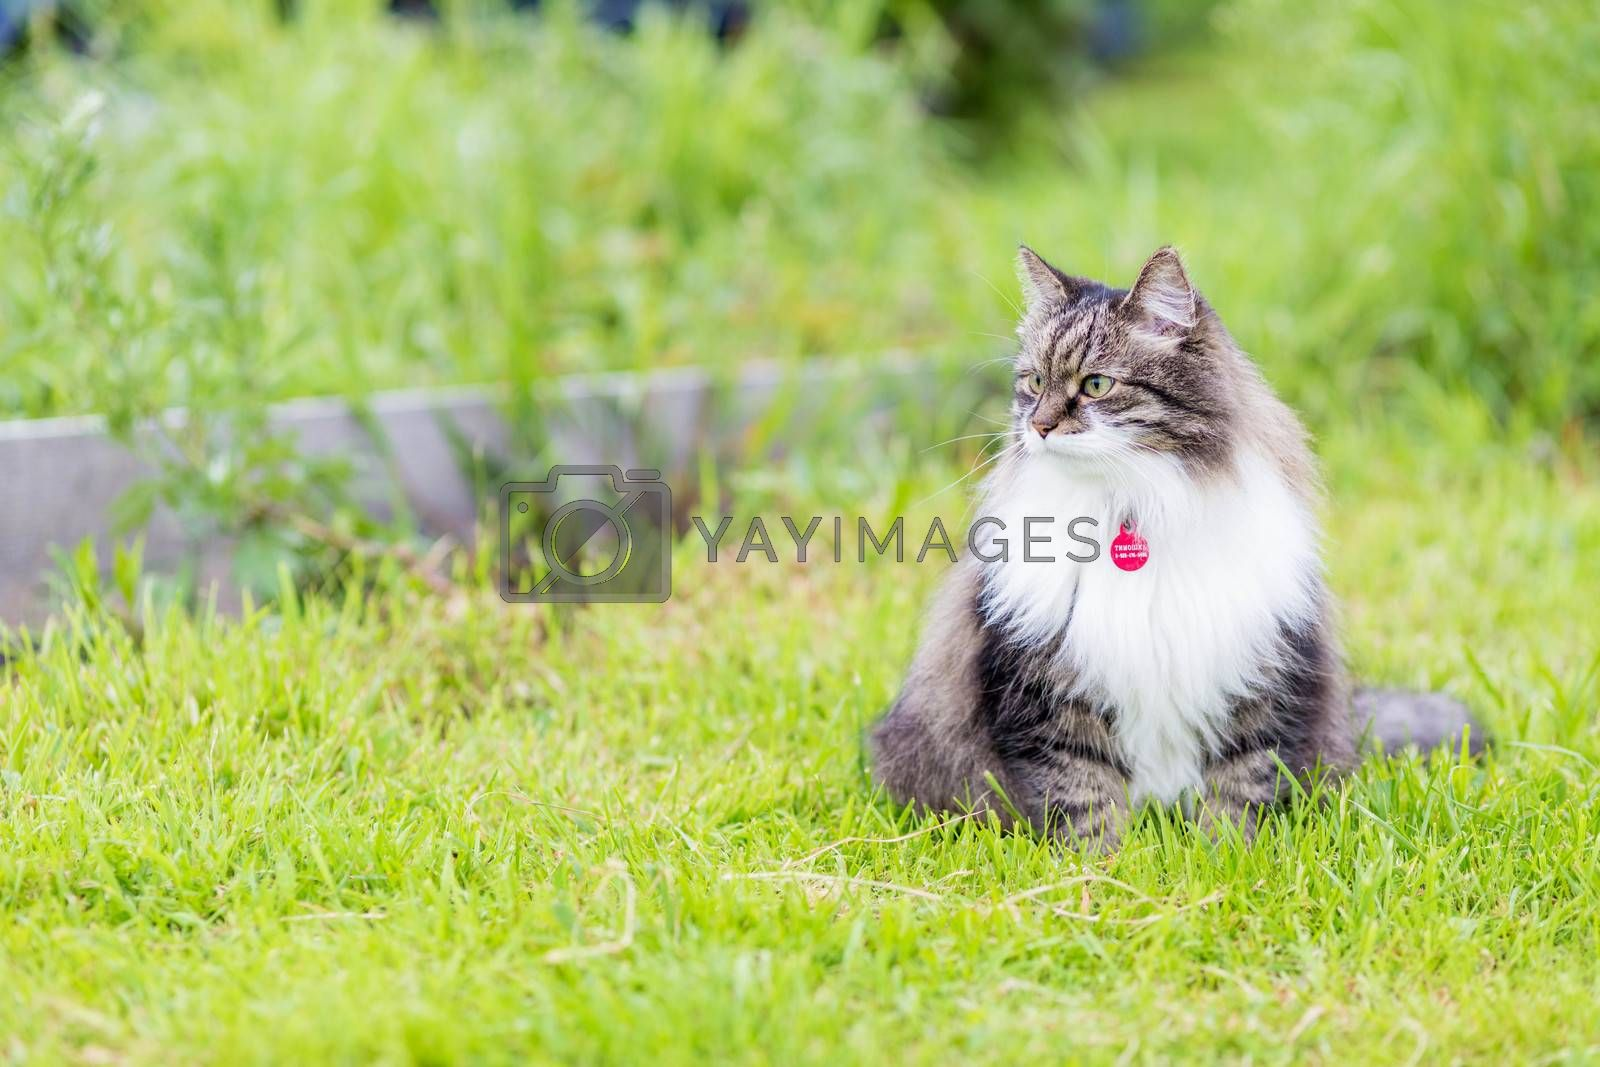 A fluffy gray cat with a luxurious white breast sits in the grass and looks aside